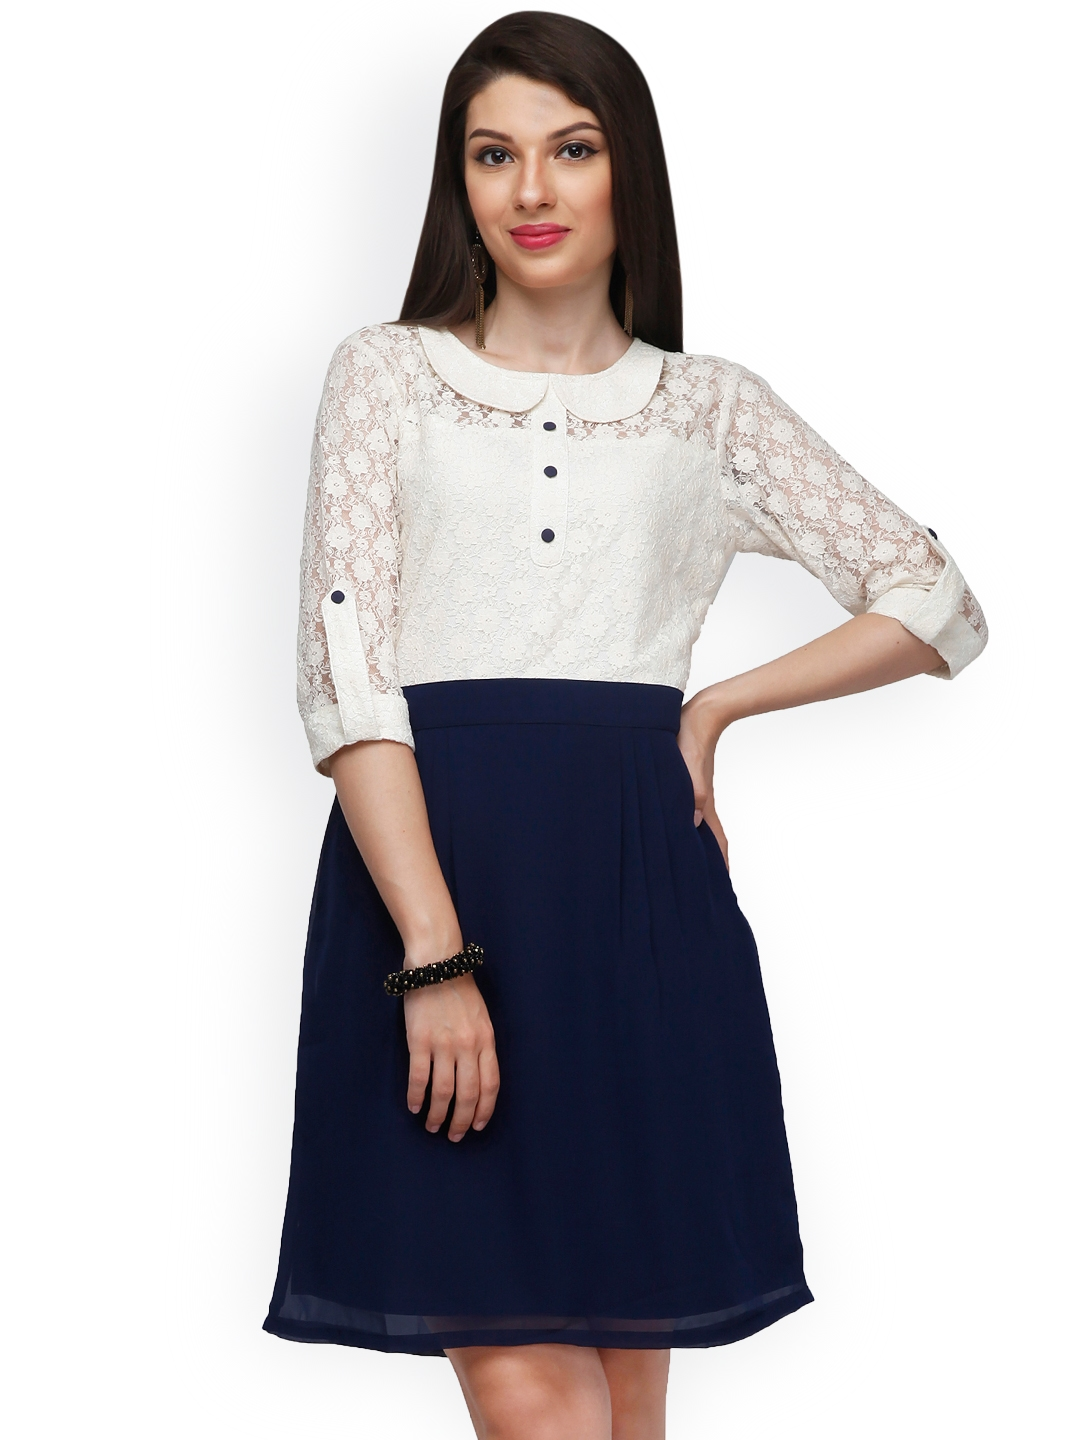 3545f9aef0b Buy Eavan White   Navy Lace A Line Dress - Dresses for Women 1402115 ...